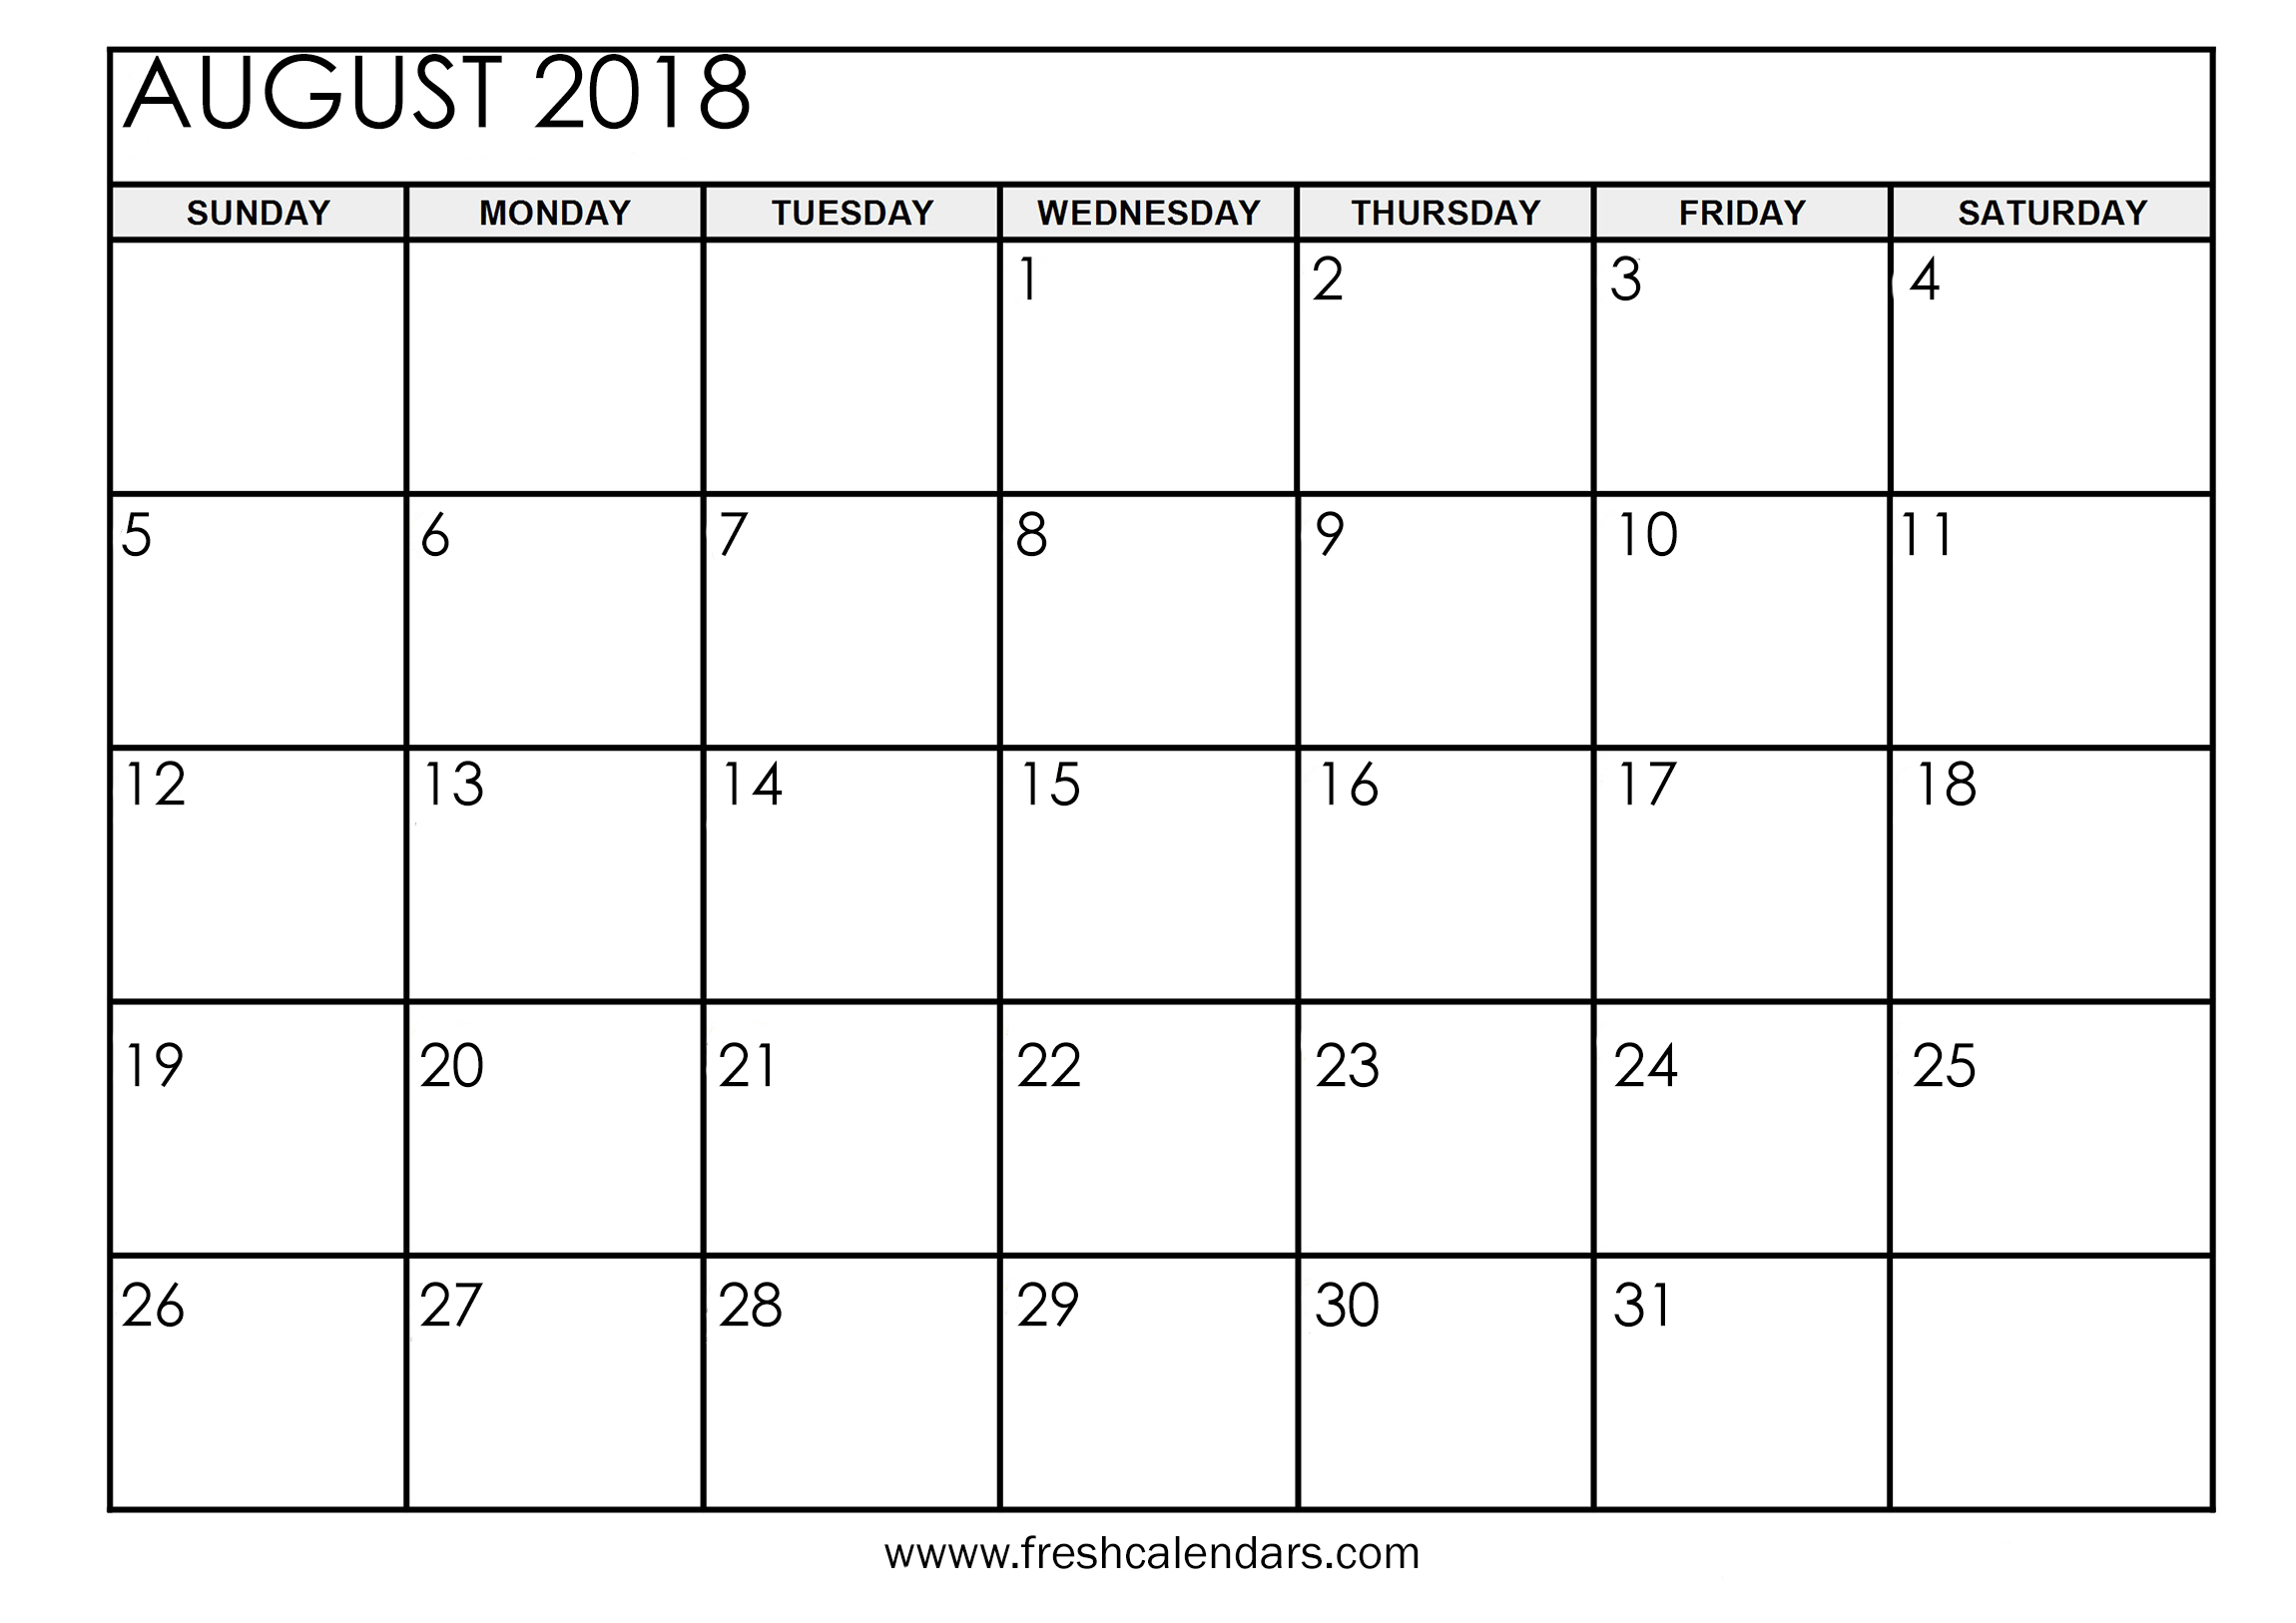 August 2018 Calendar Printable - Fresh Calendars with regard to August Calendar Template To Type In